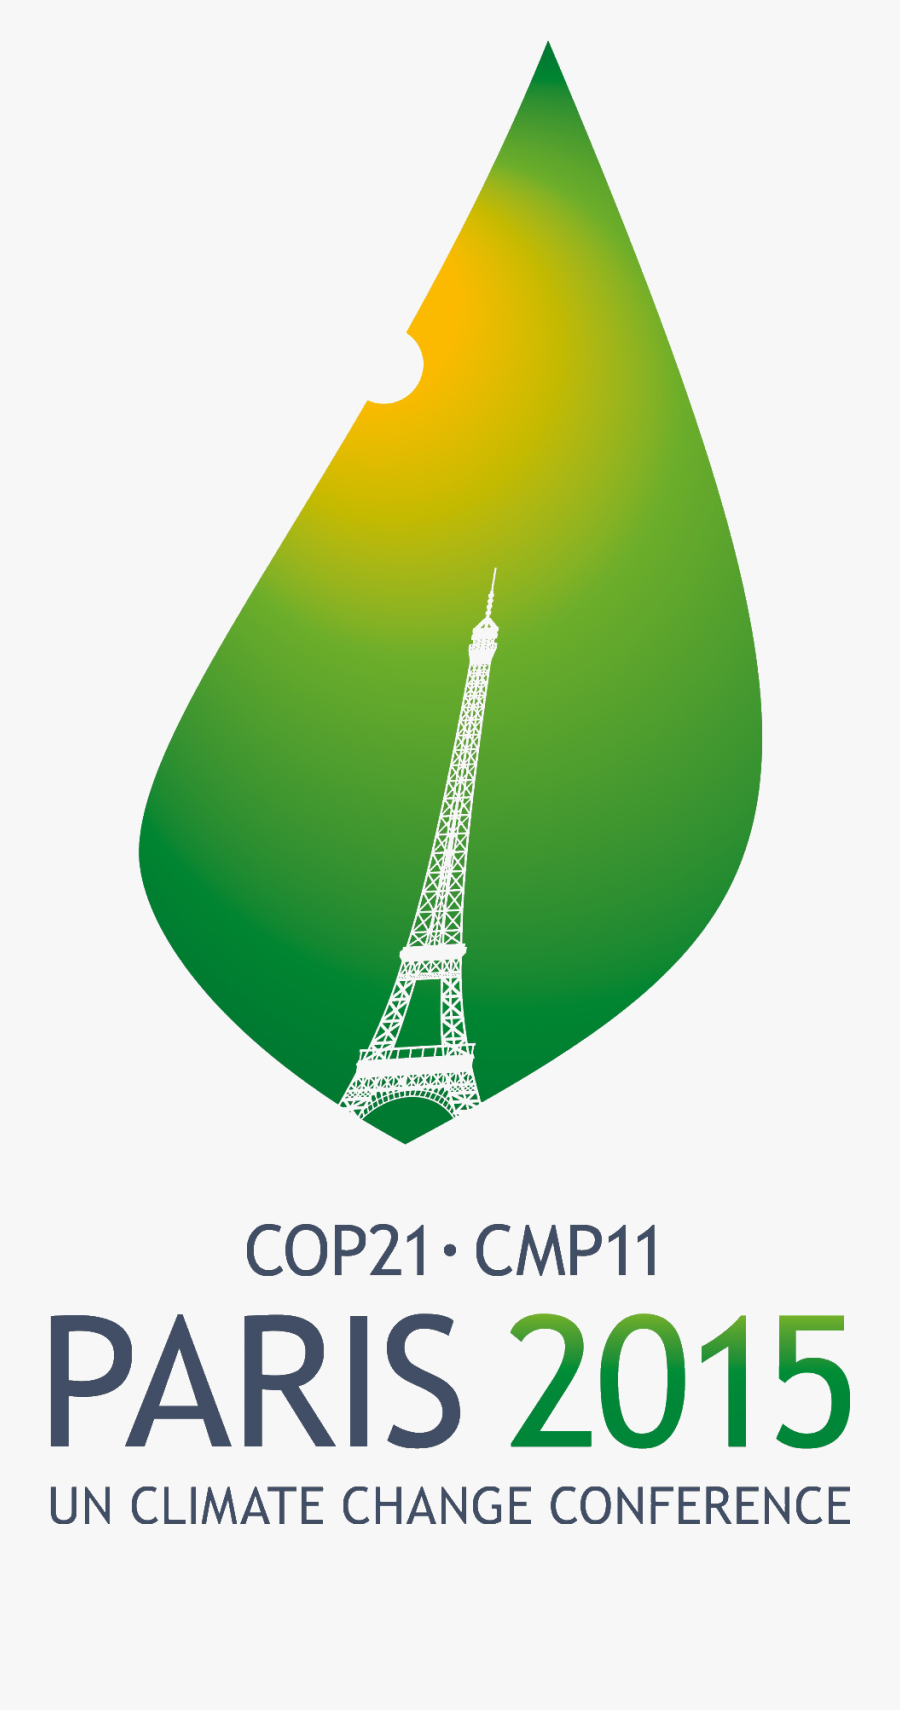 Cop21 - 2015 United Nations Climate Change Conference, Transparent Clipart